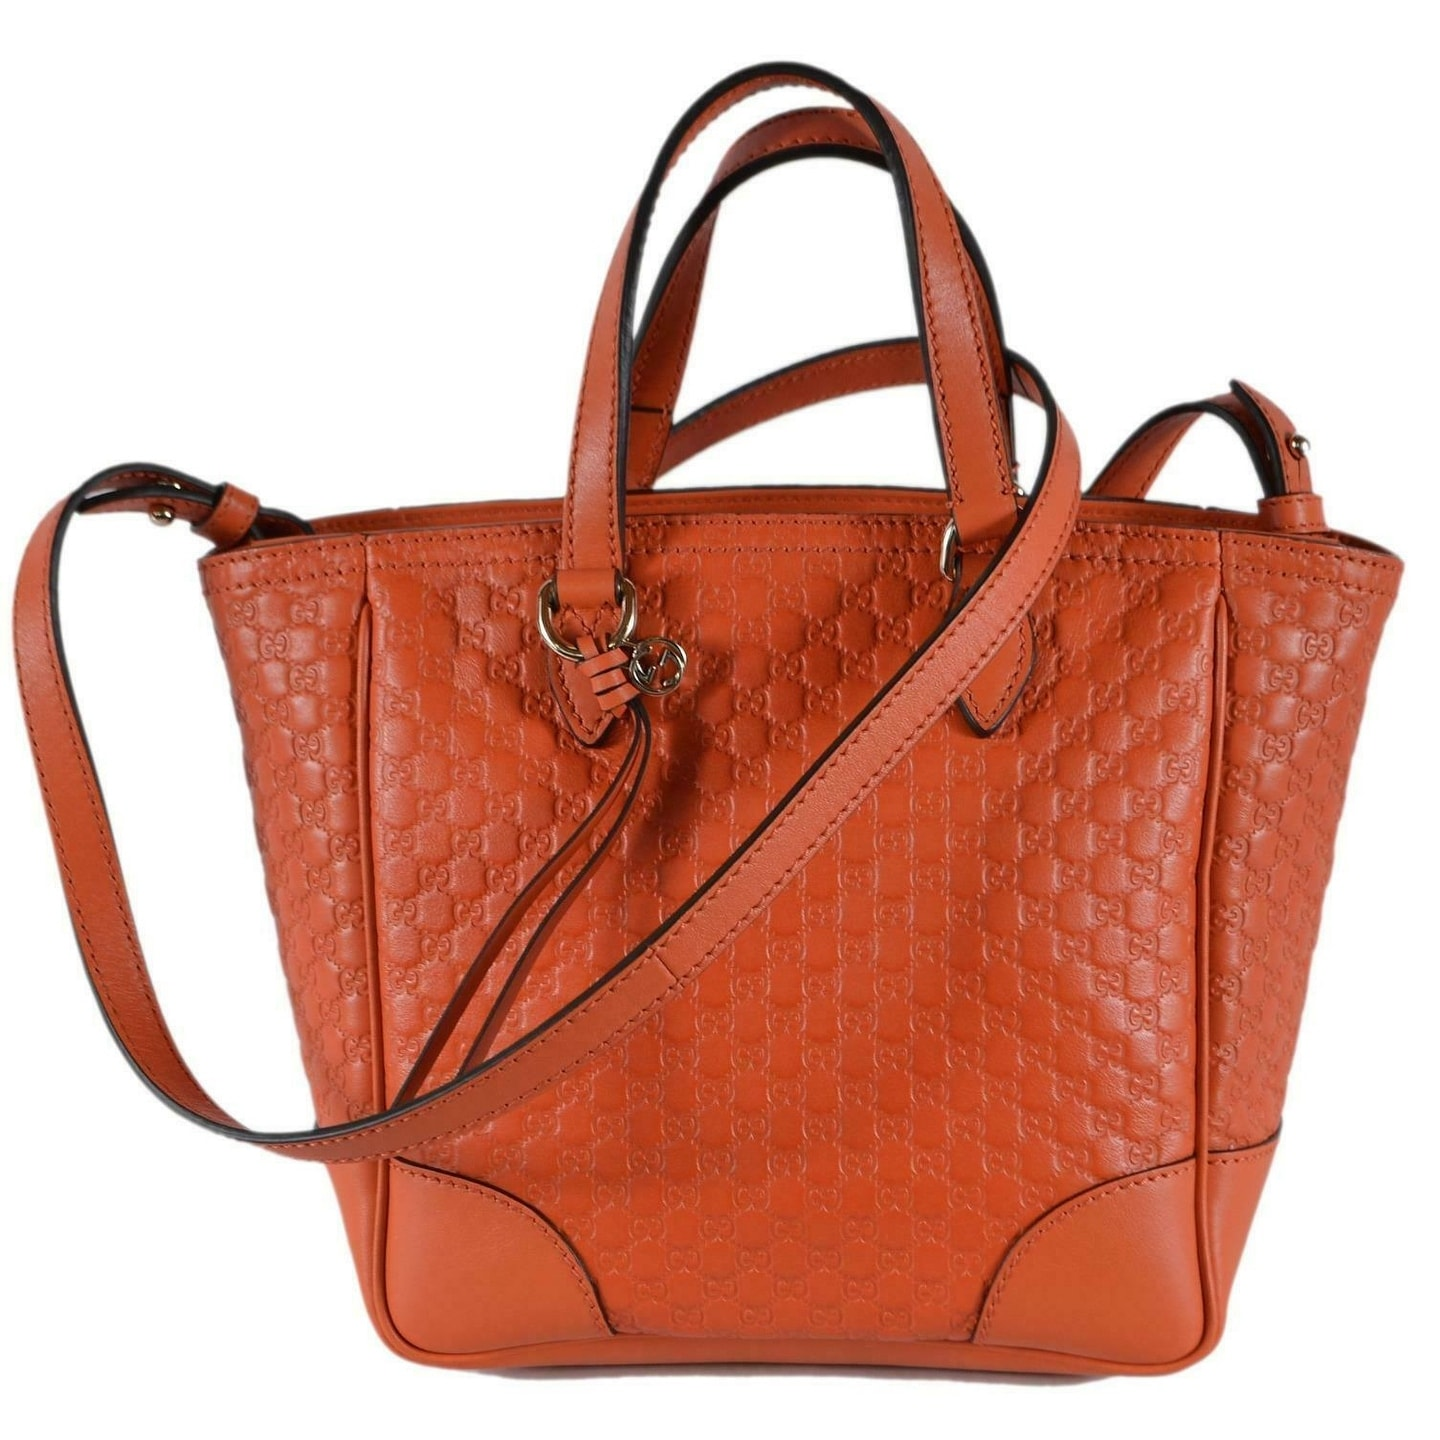 performance sportswear search for authentic check out Gucci Women's 449241 Orange Leather Small Bree GG Guccissima Crossbody Bag